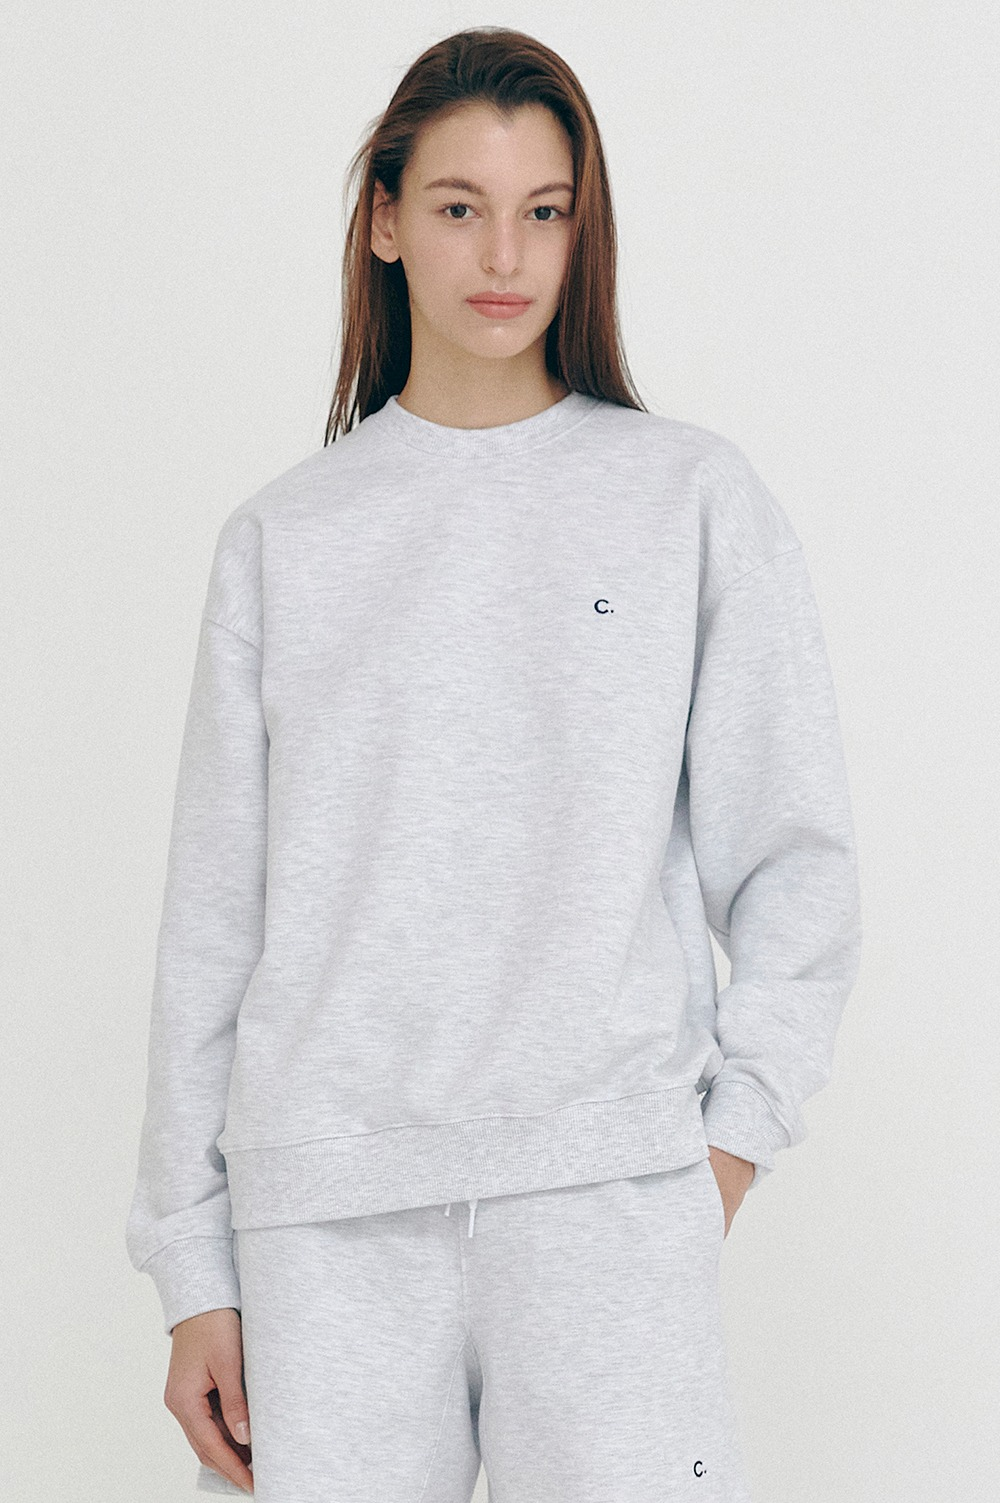 clove - Active Sweatshirts_Women (Light Grey)